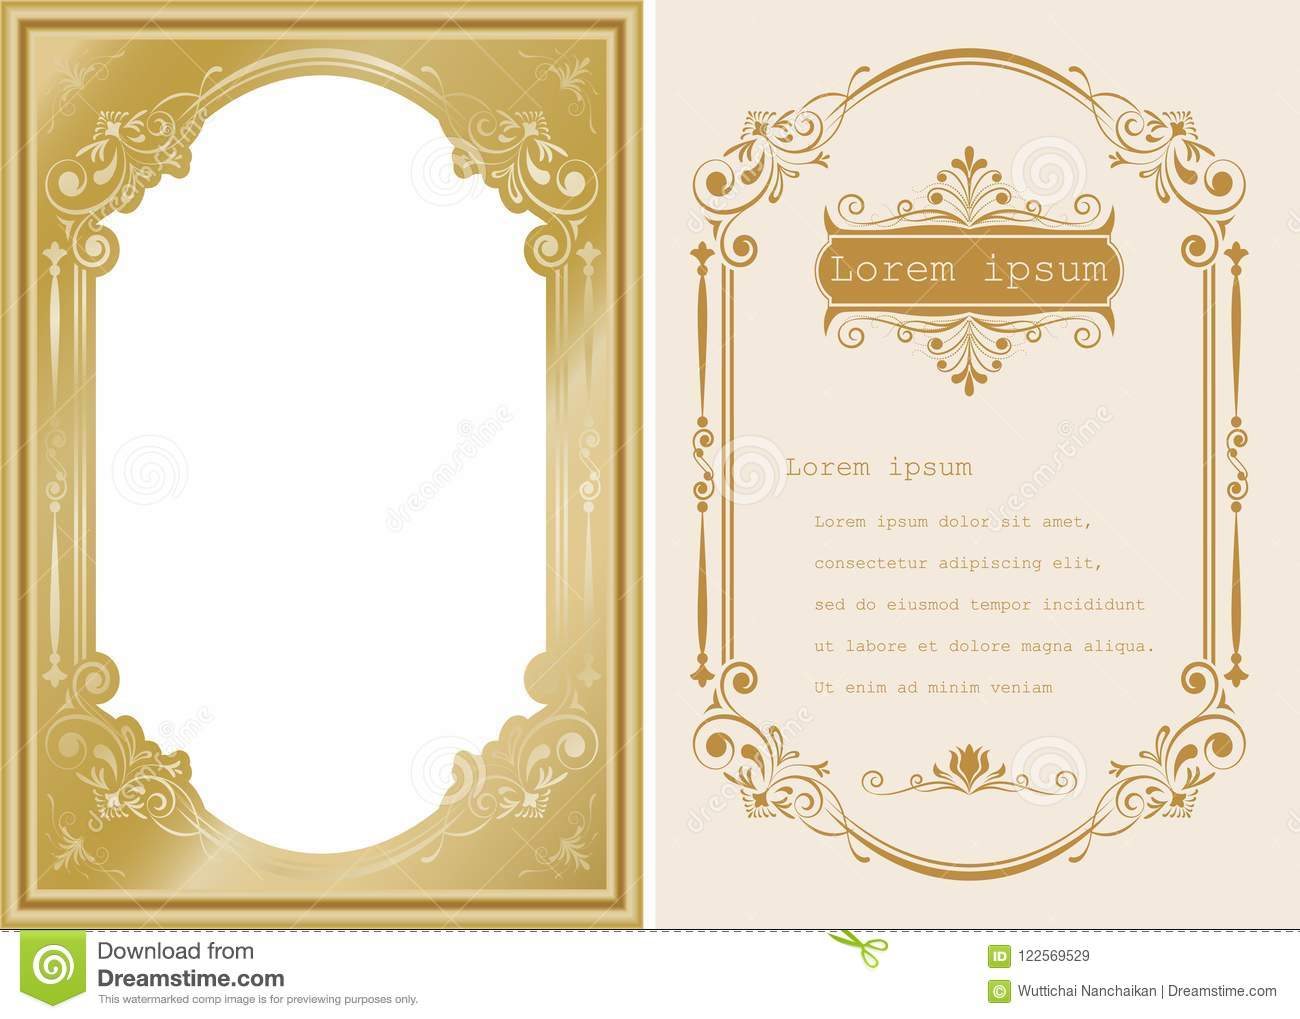 84f7ddd81720 Premium invitation or wedding card in vintage decorative golden frame with  beautiful filigree and retro border on ancient background